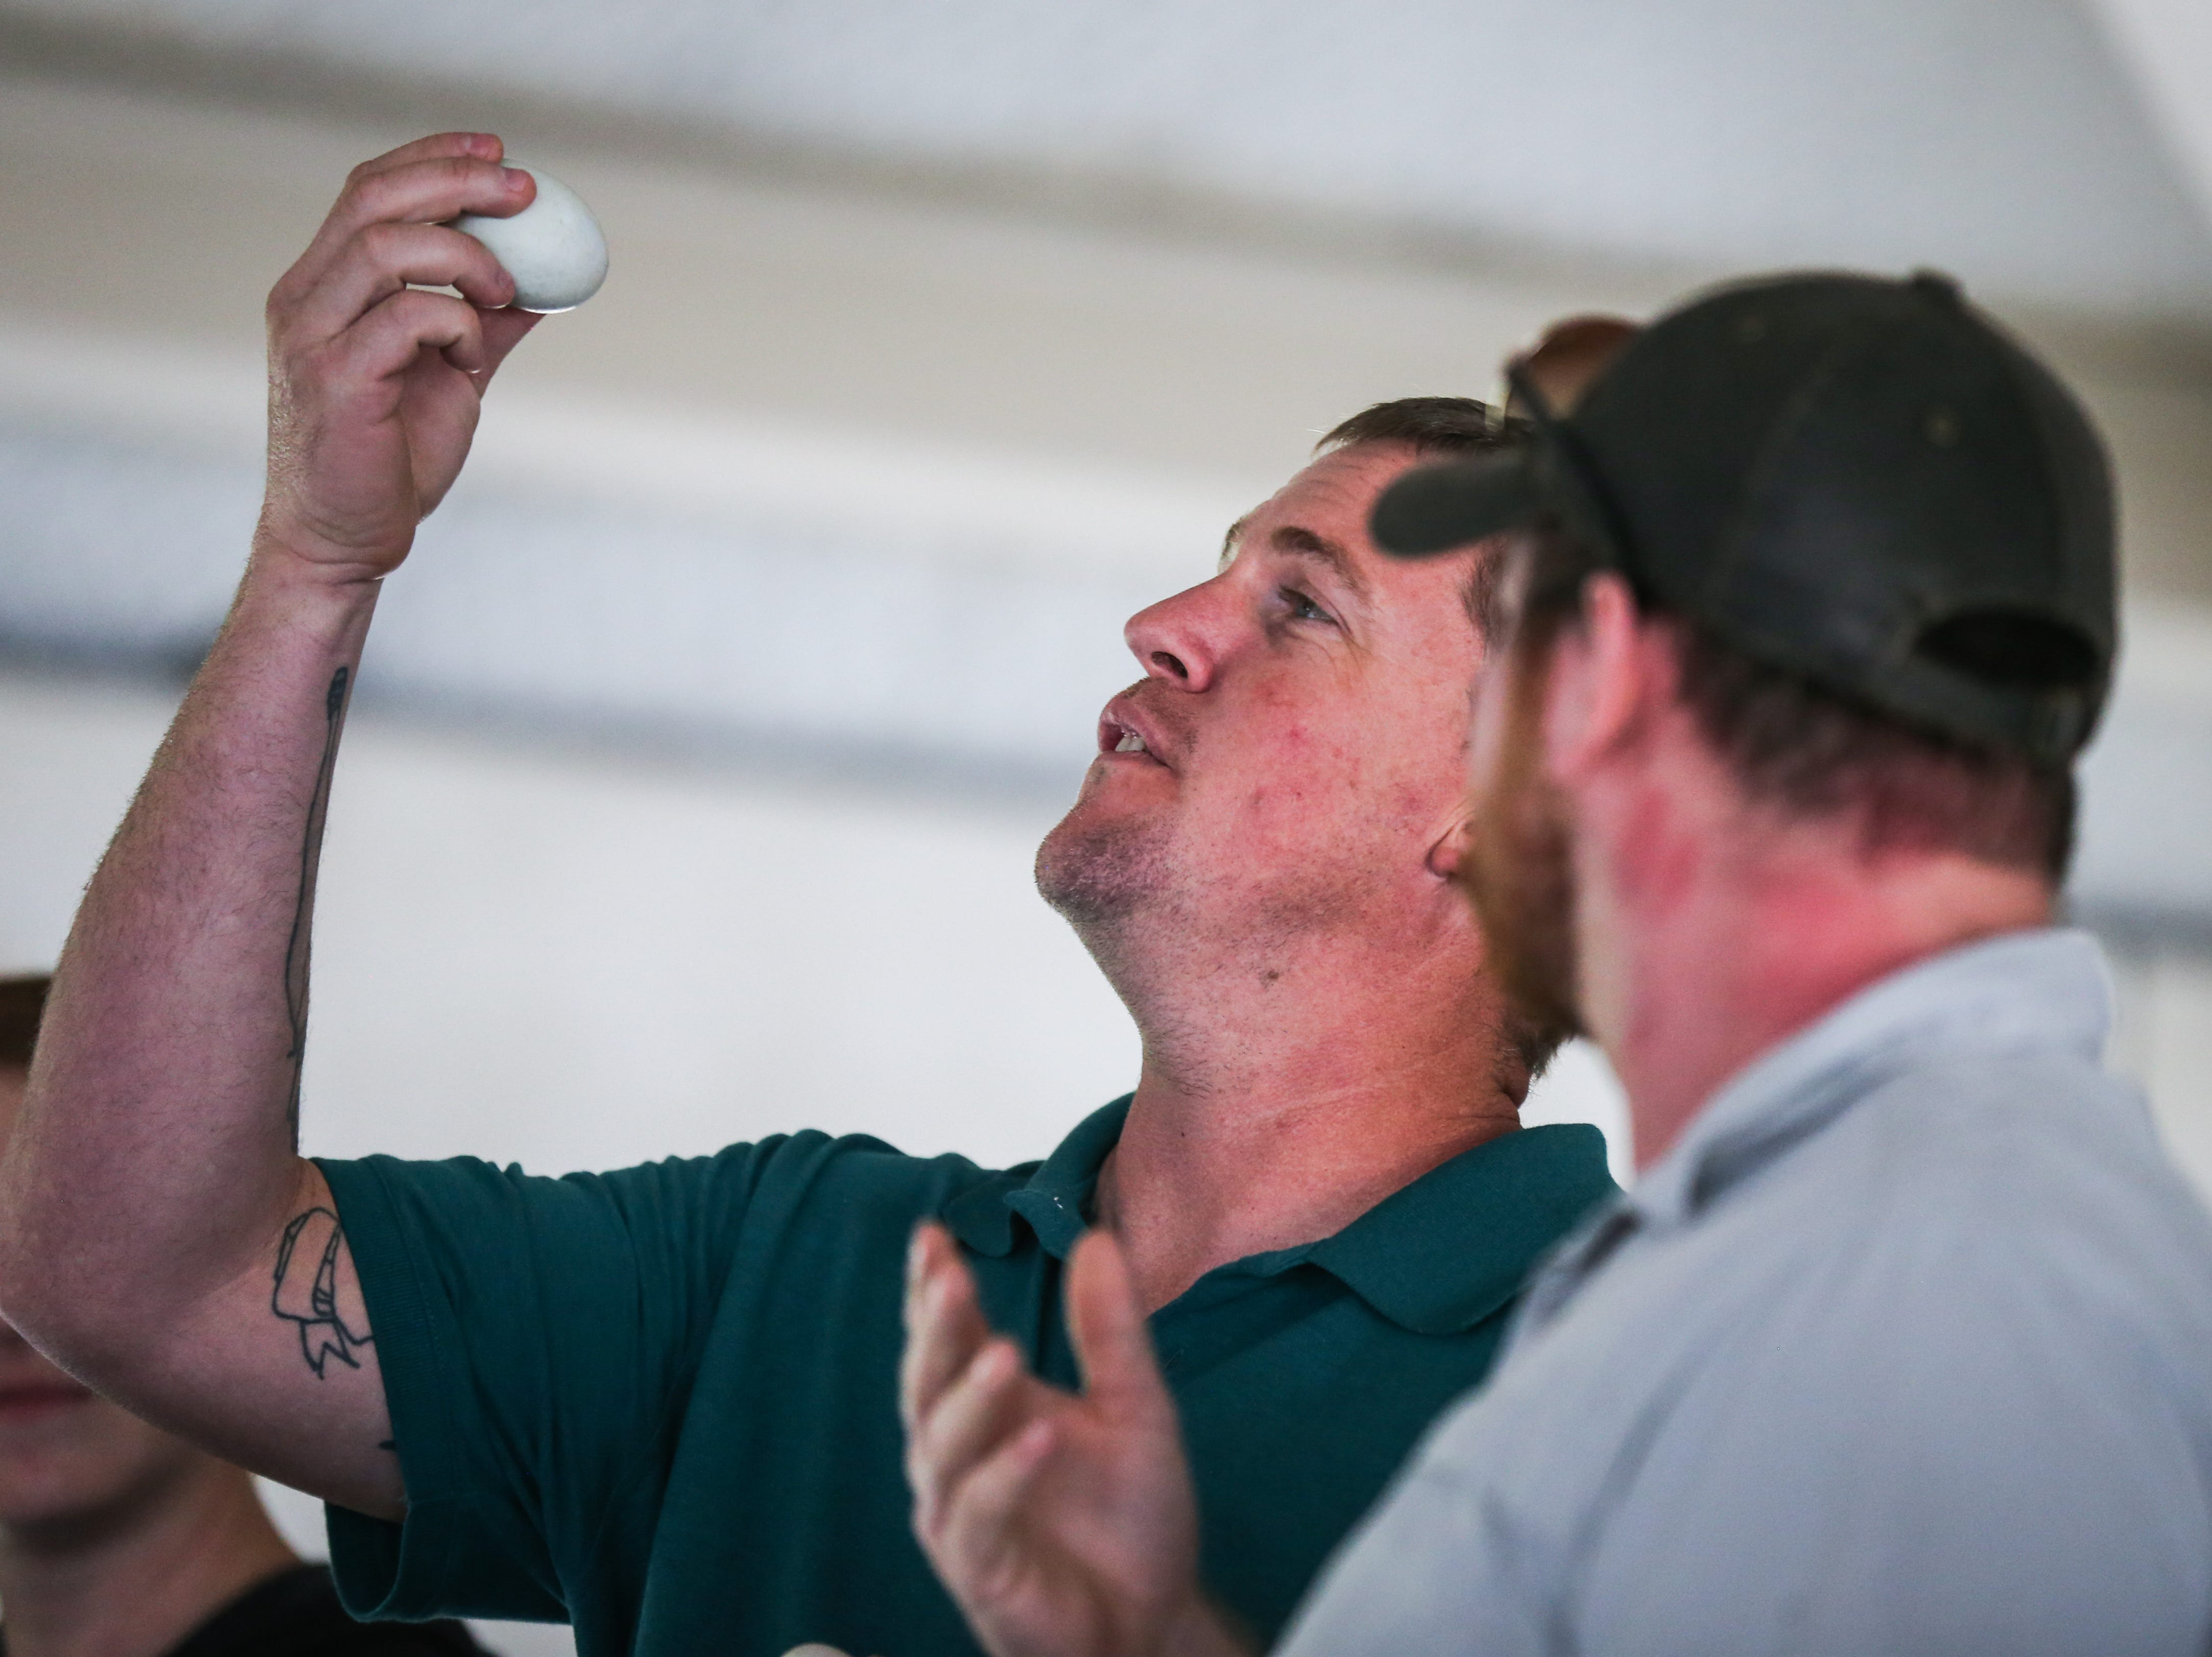 Wes Richardson and Harry Briggs look at the balut they are about to eat in a contest during the Asian Bazaar Saturday, Oct. 20, 2018, at El Paseo de Santa Angela.